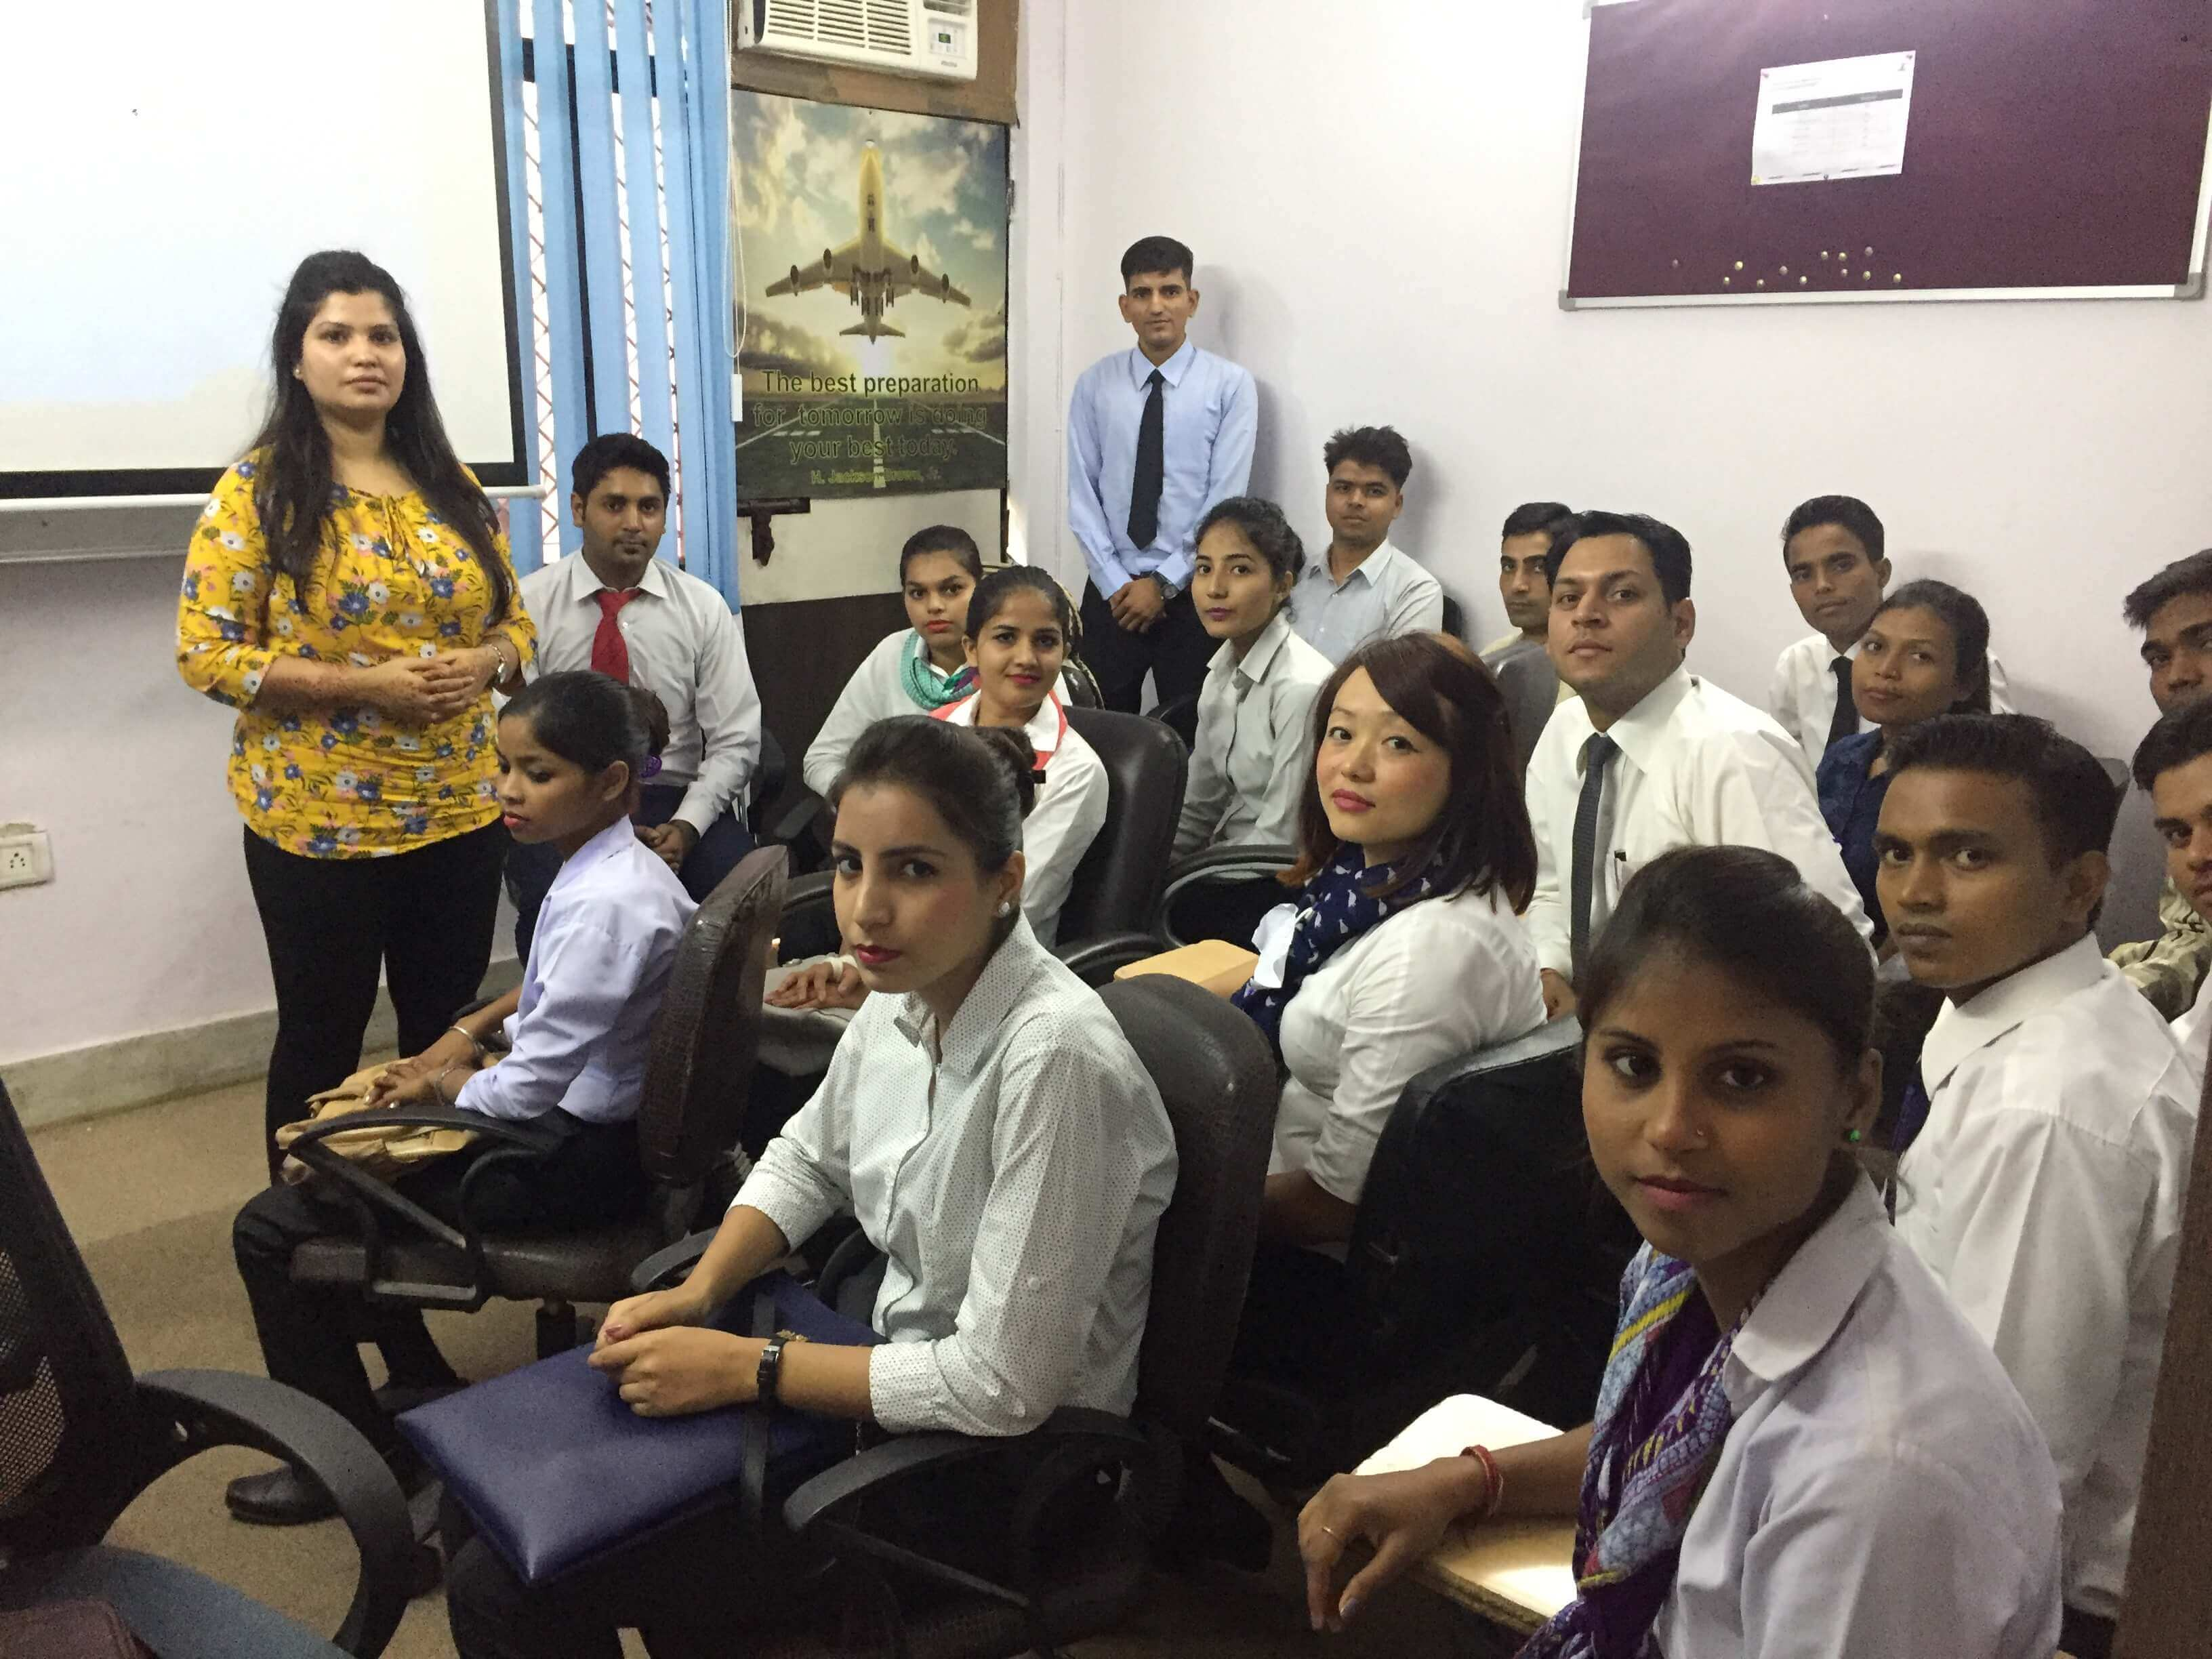 IGI Aviating Training Program